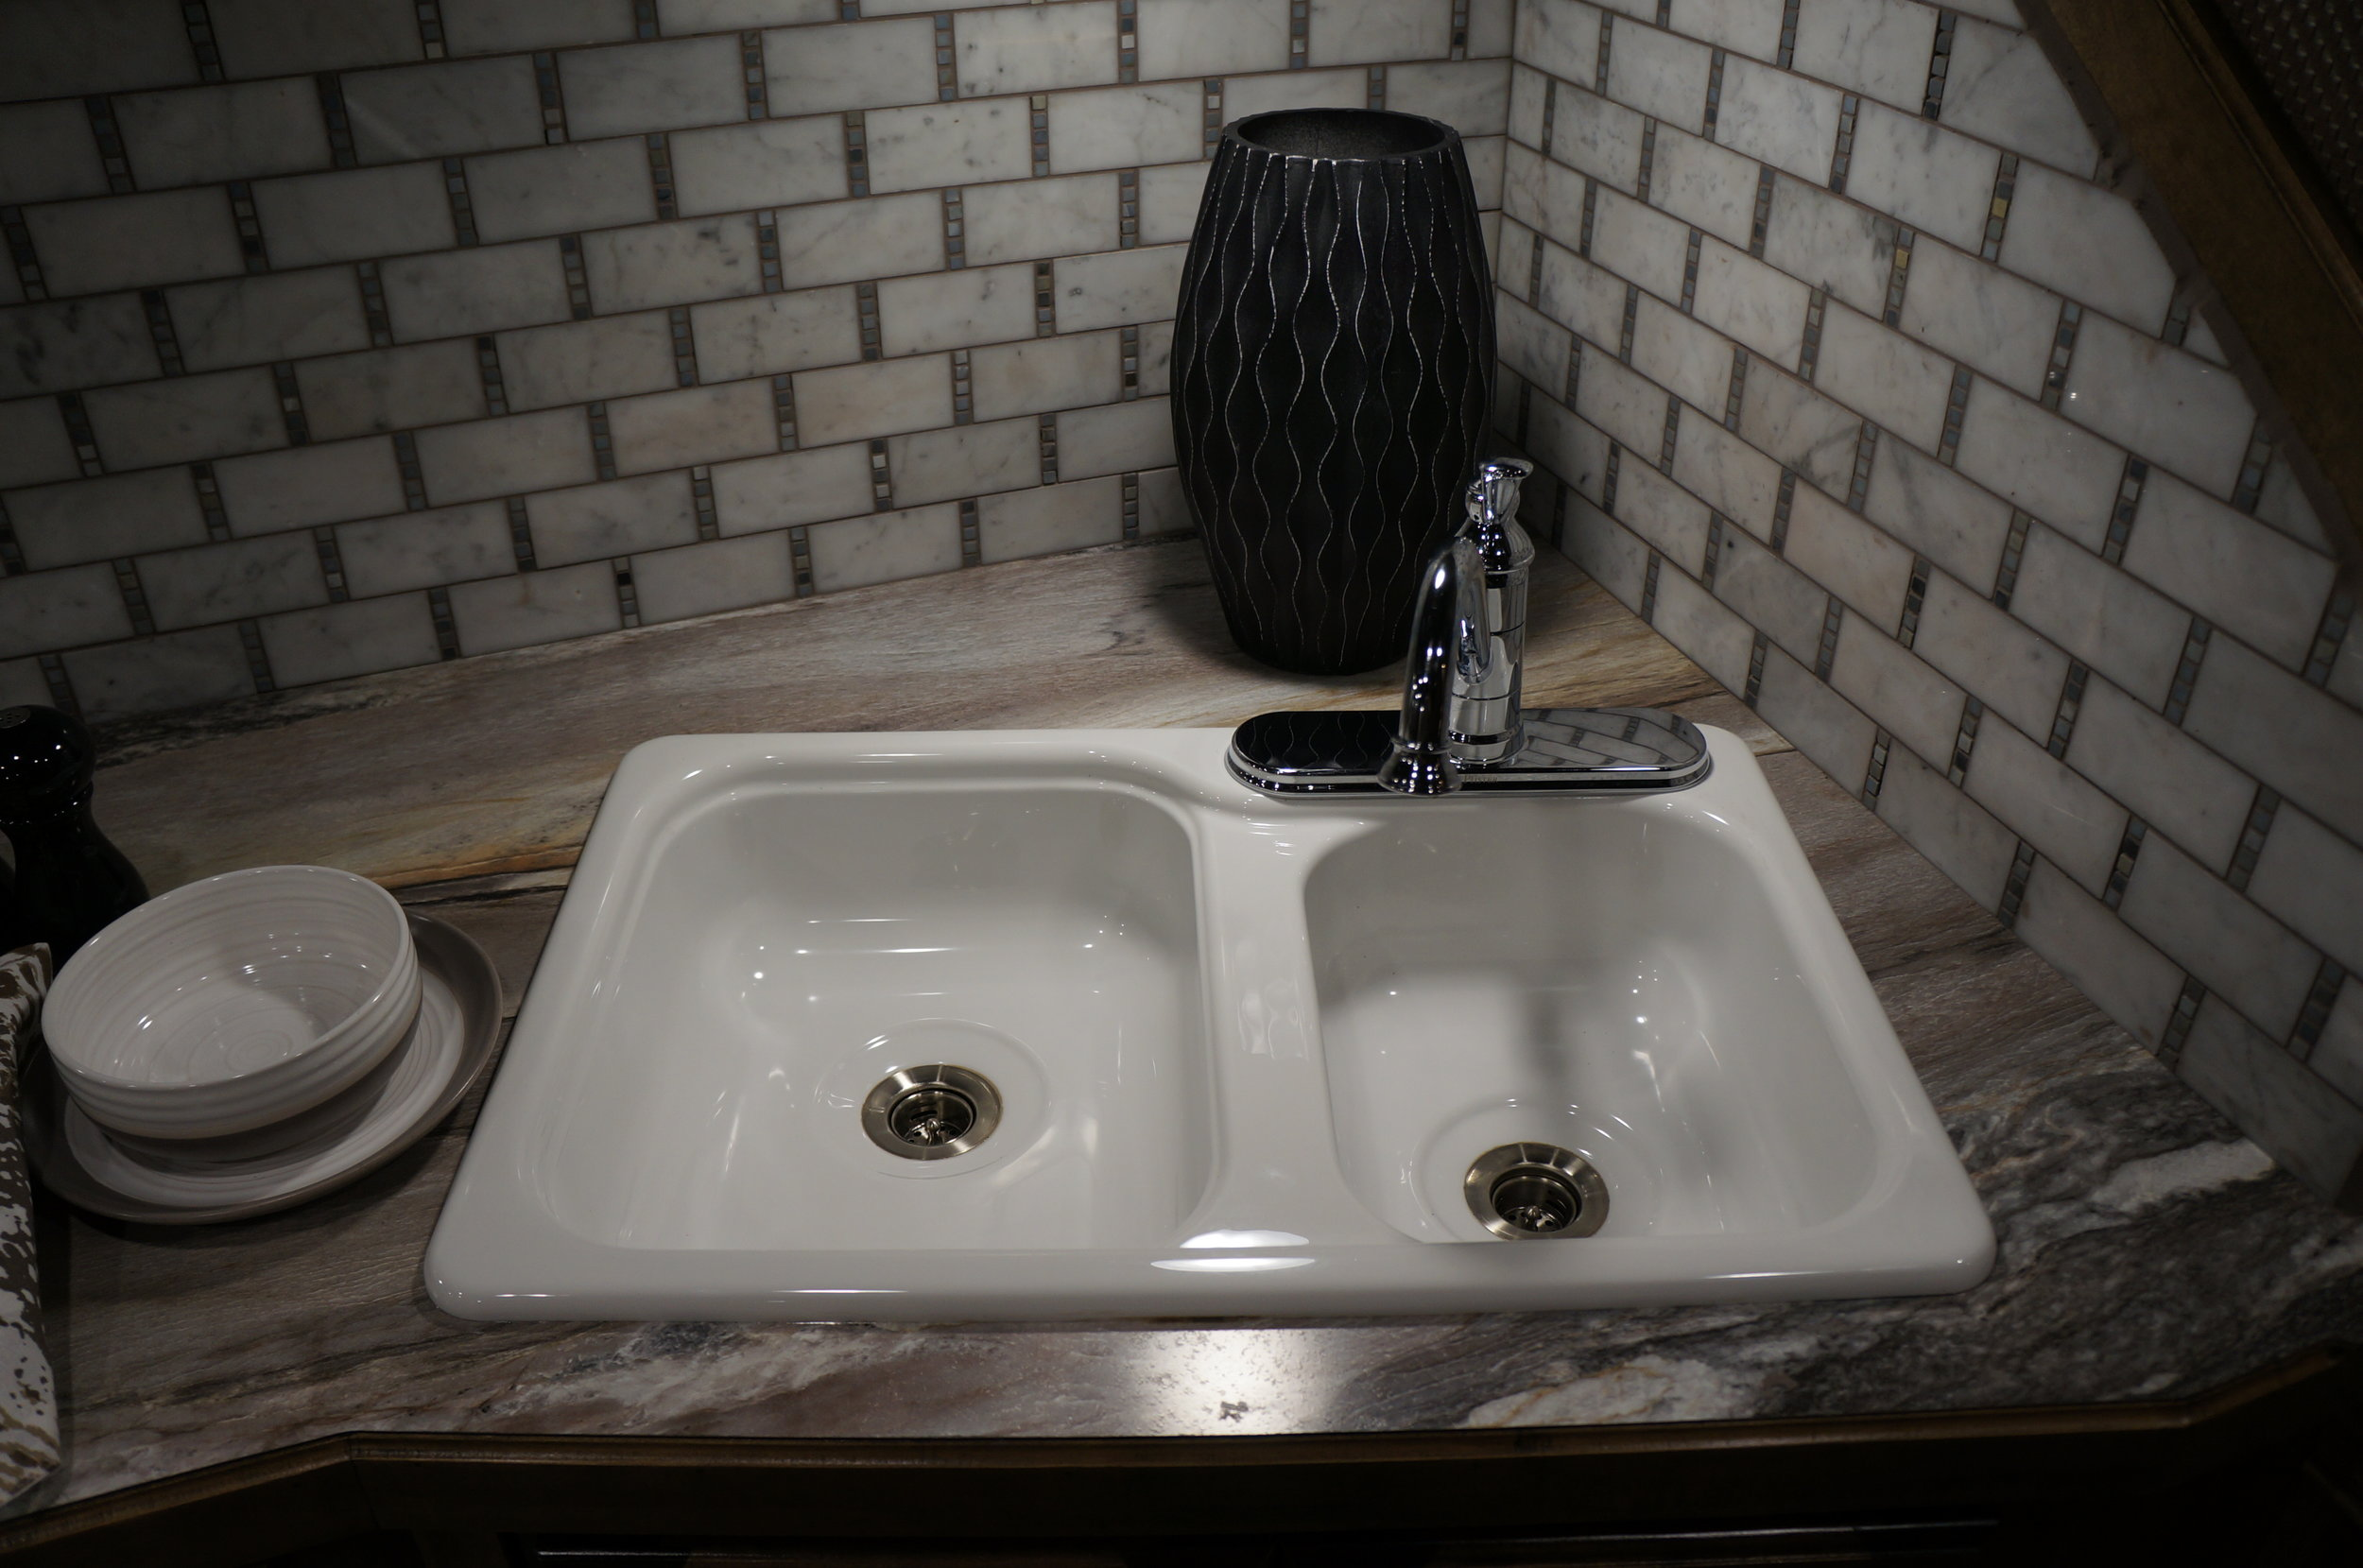 Standard White Double Sink with Silver Faucet